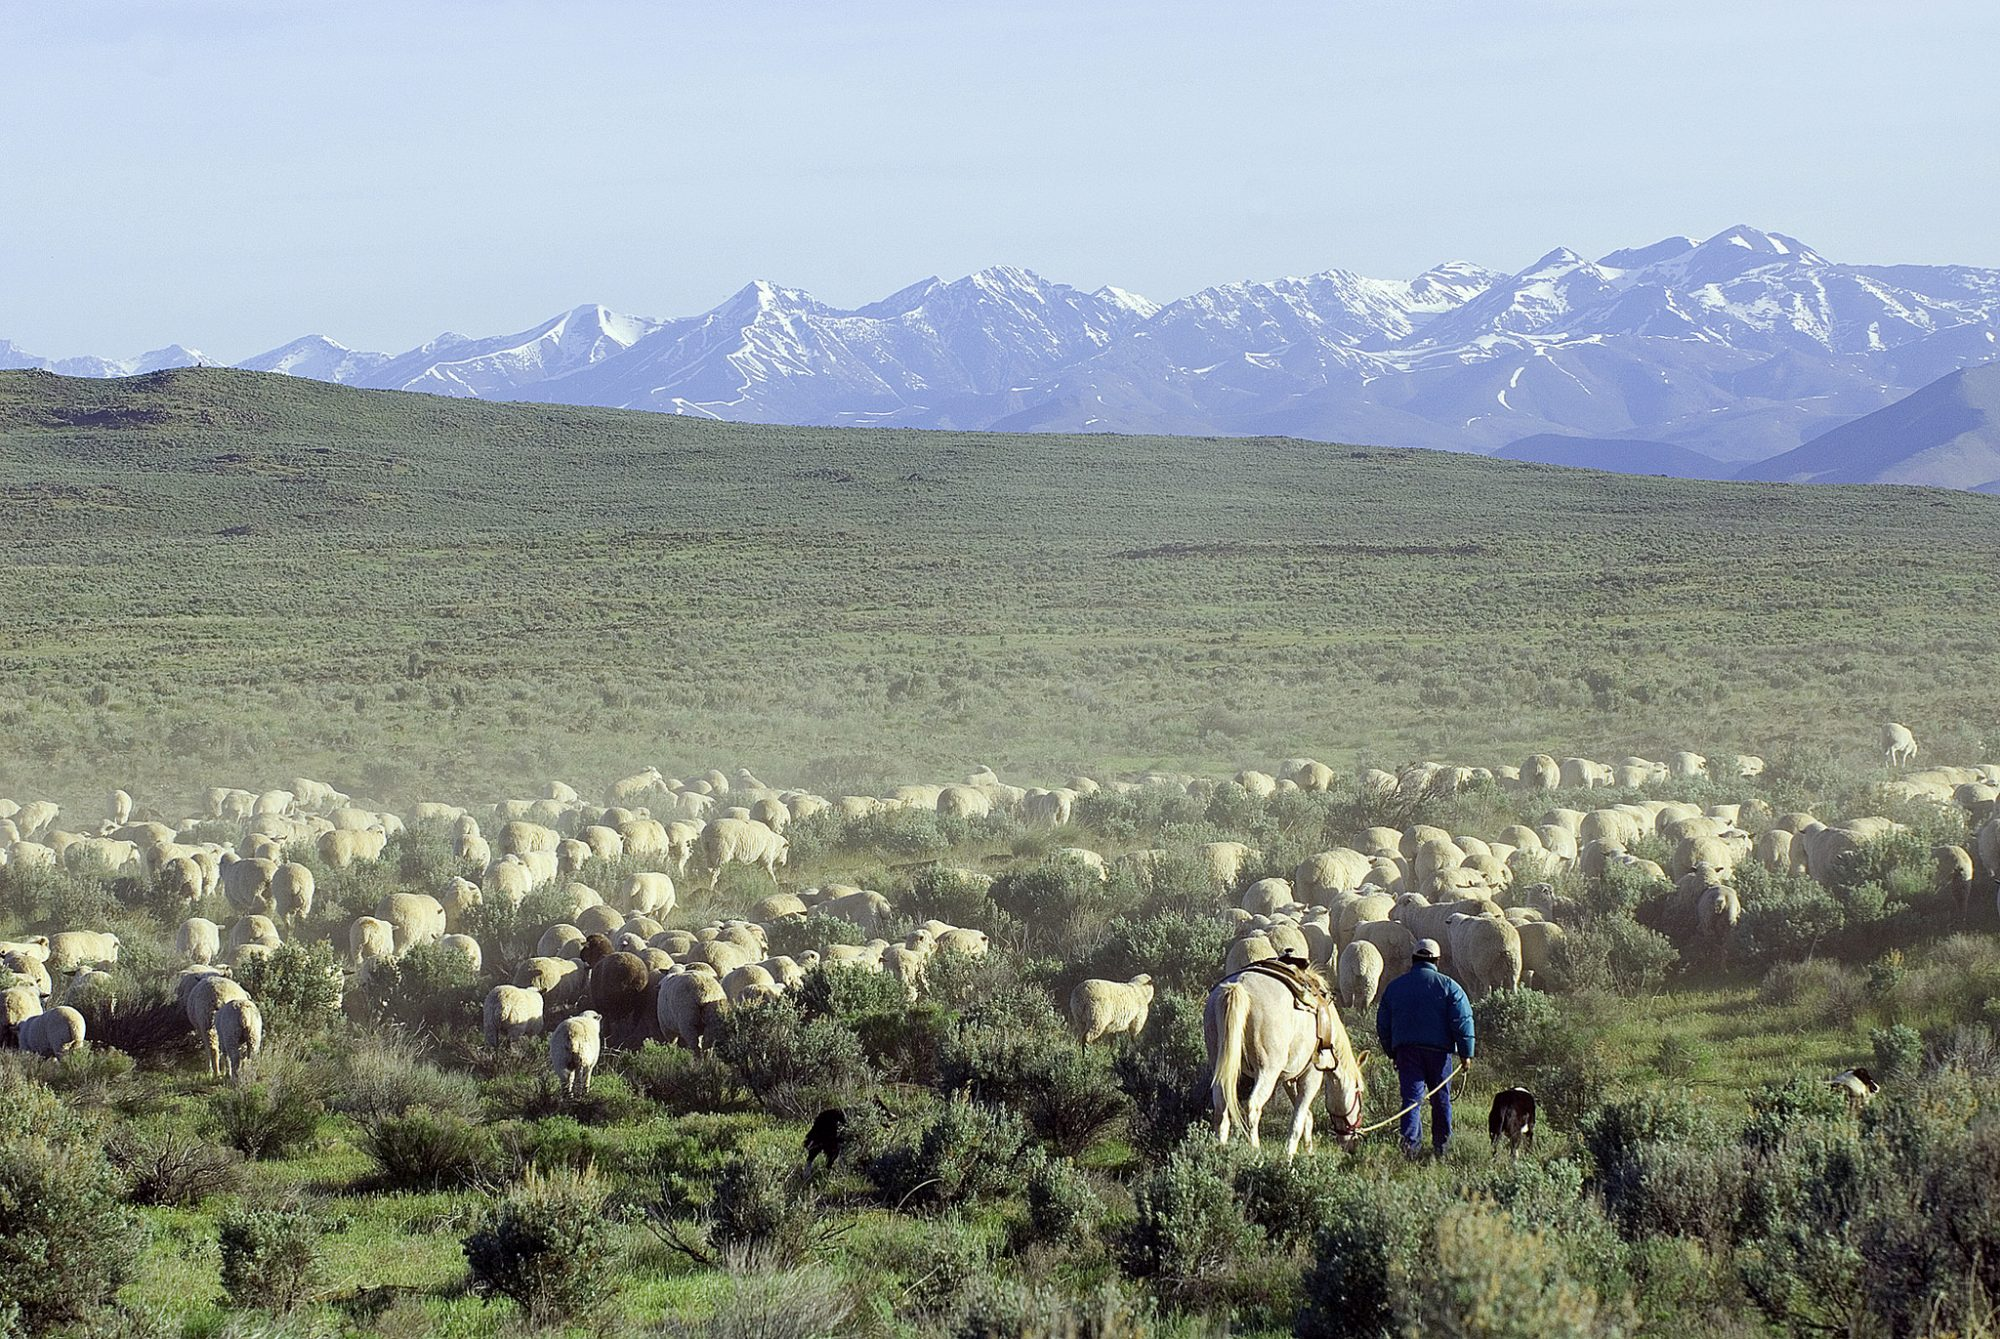 Sheep move through public lands near Shoshone, Idaho